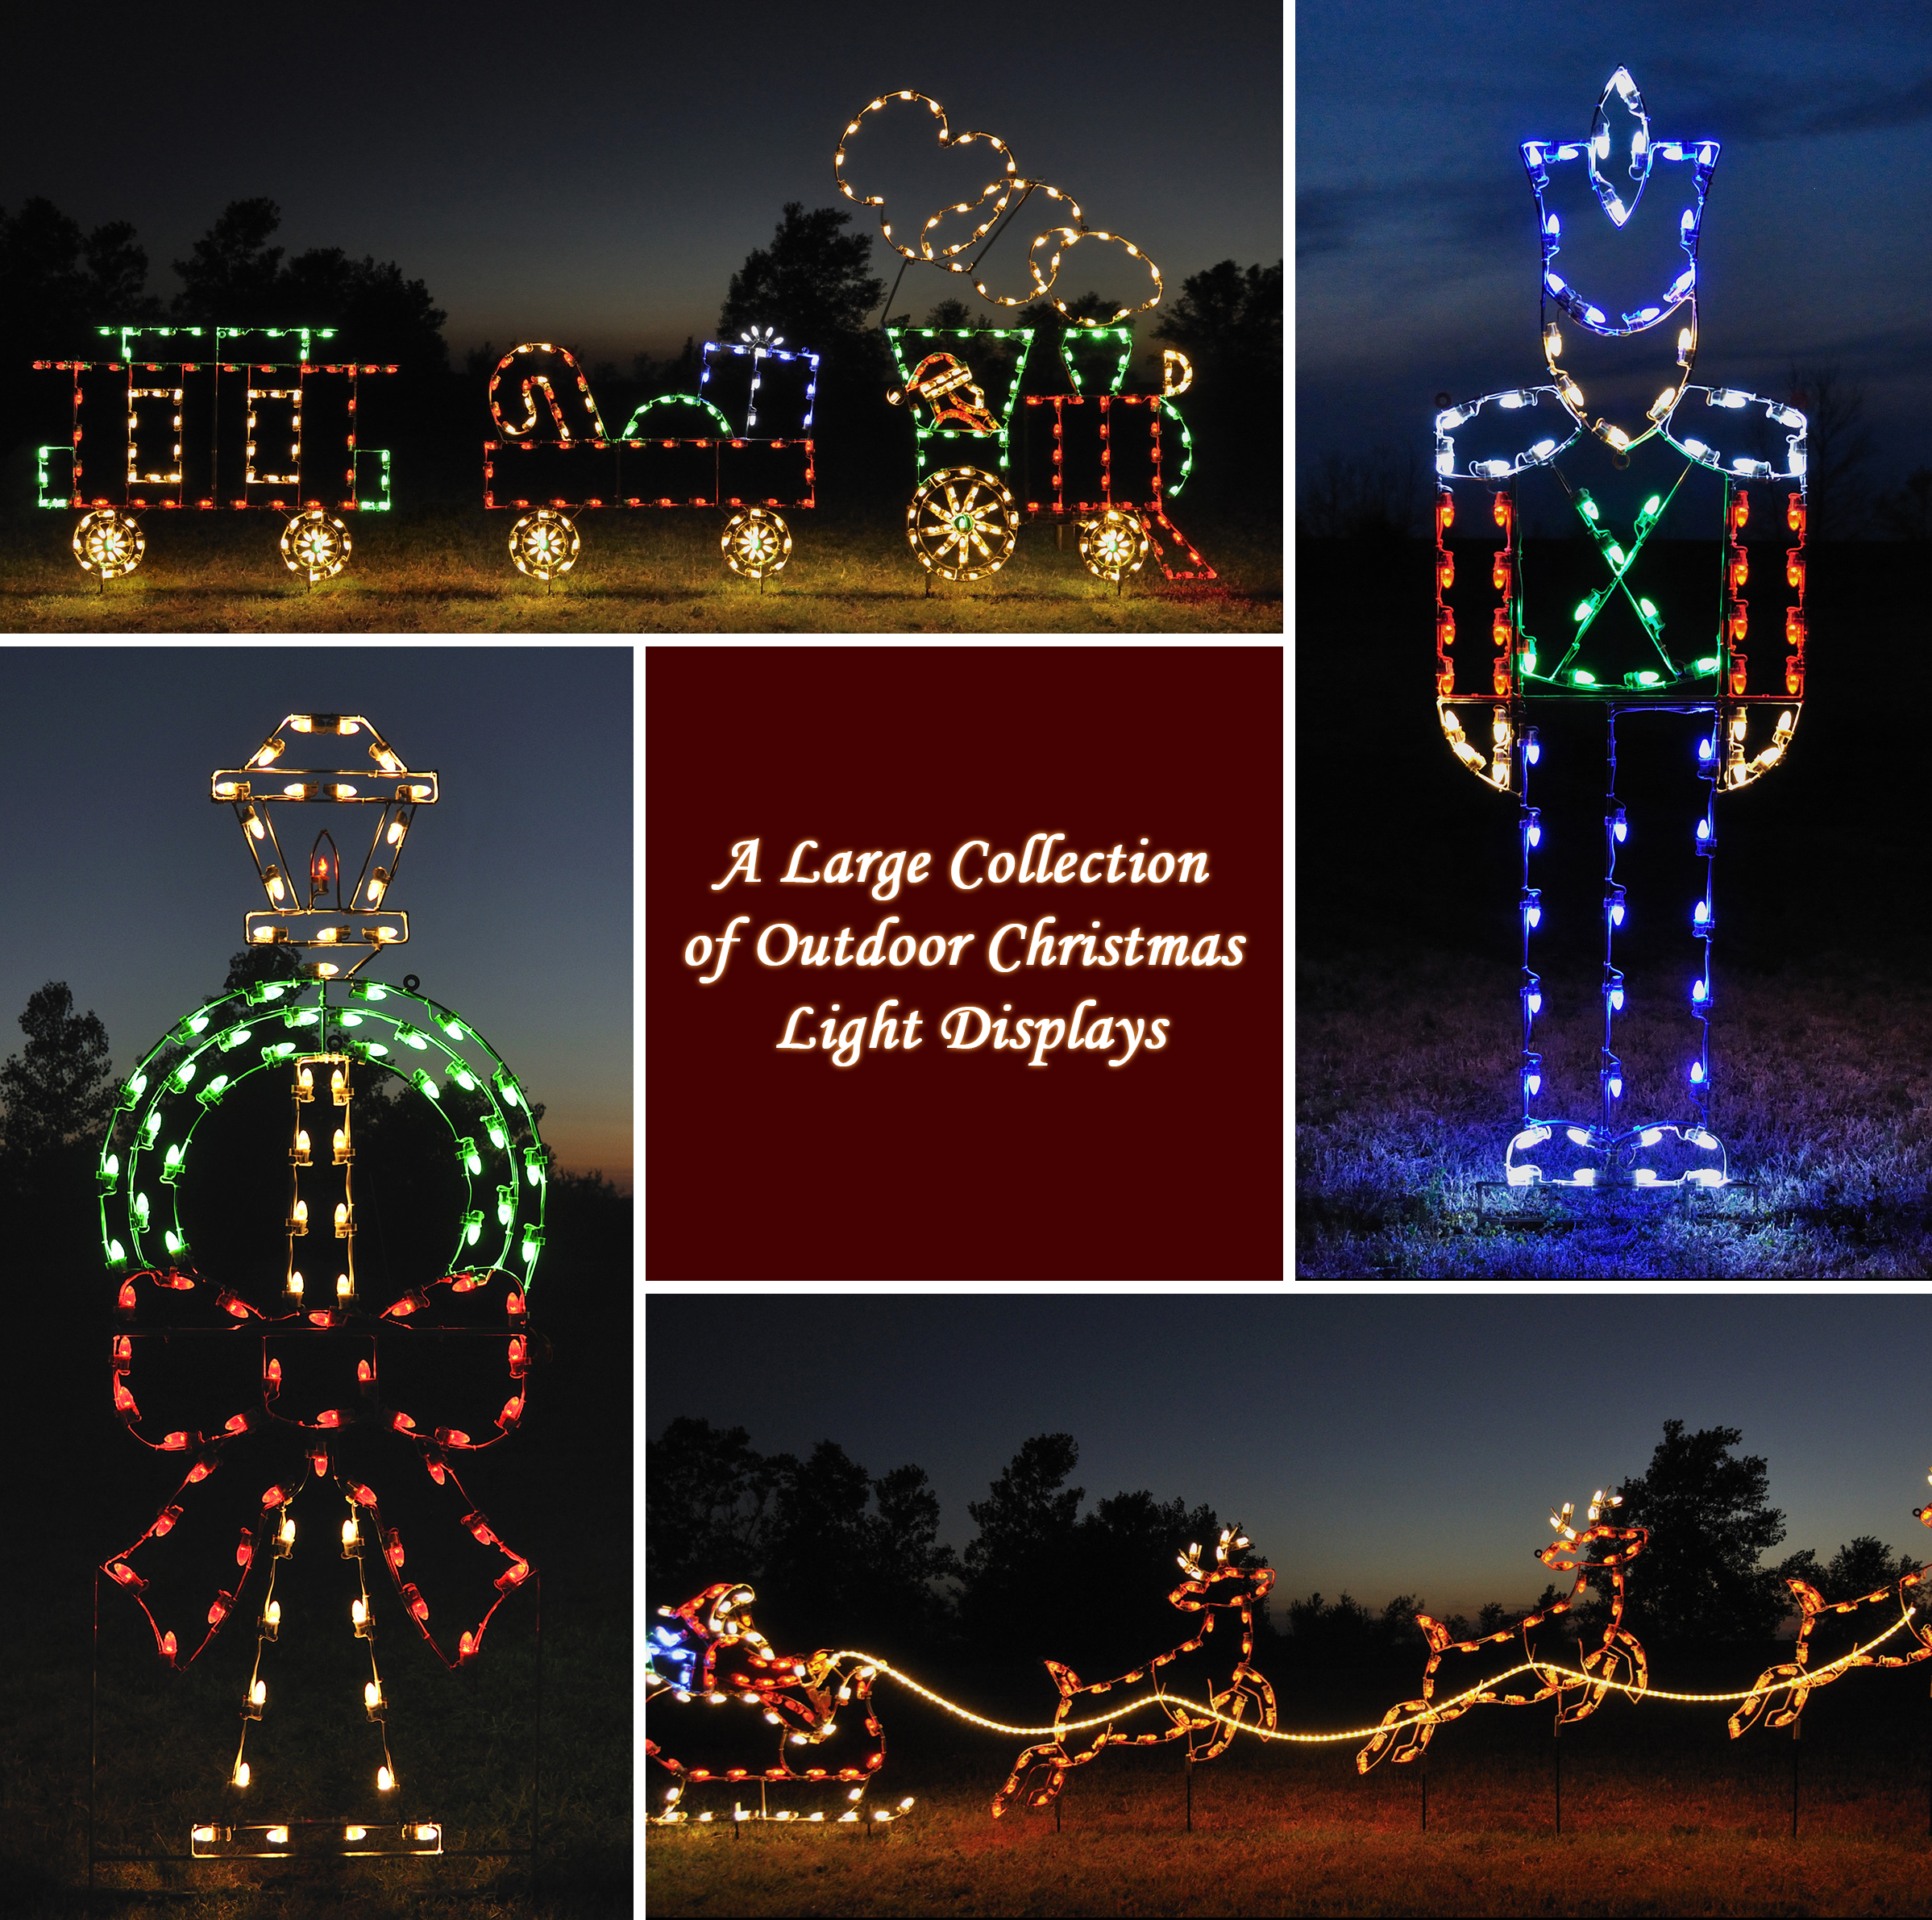 ideas outdoor islands christmas ferry animated for decorations decor fresh rainforest of night